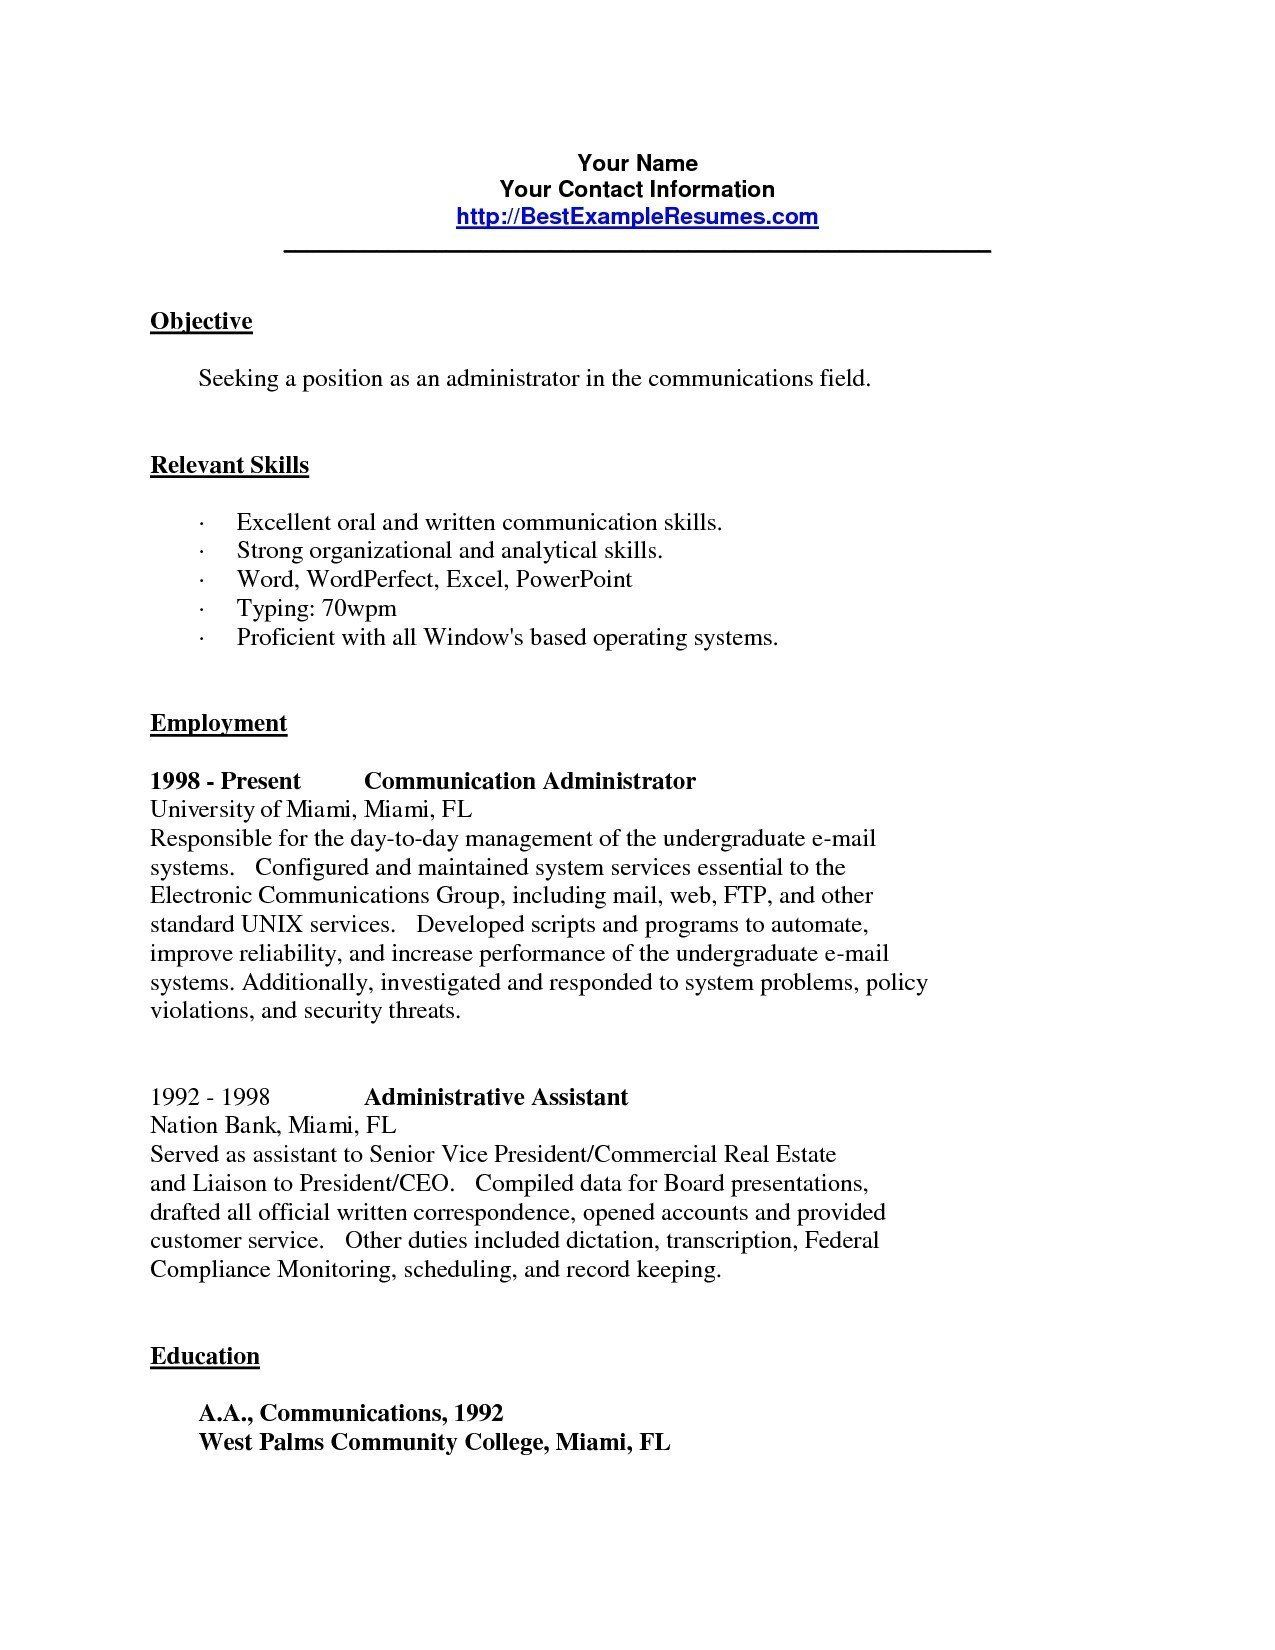 Communication Skills for Resume Awesome Lovely How to